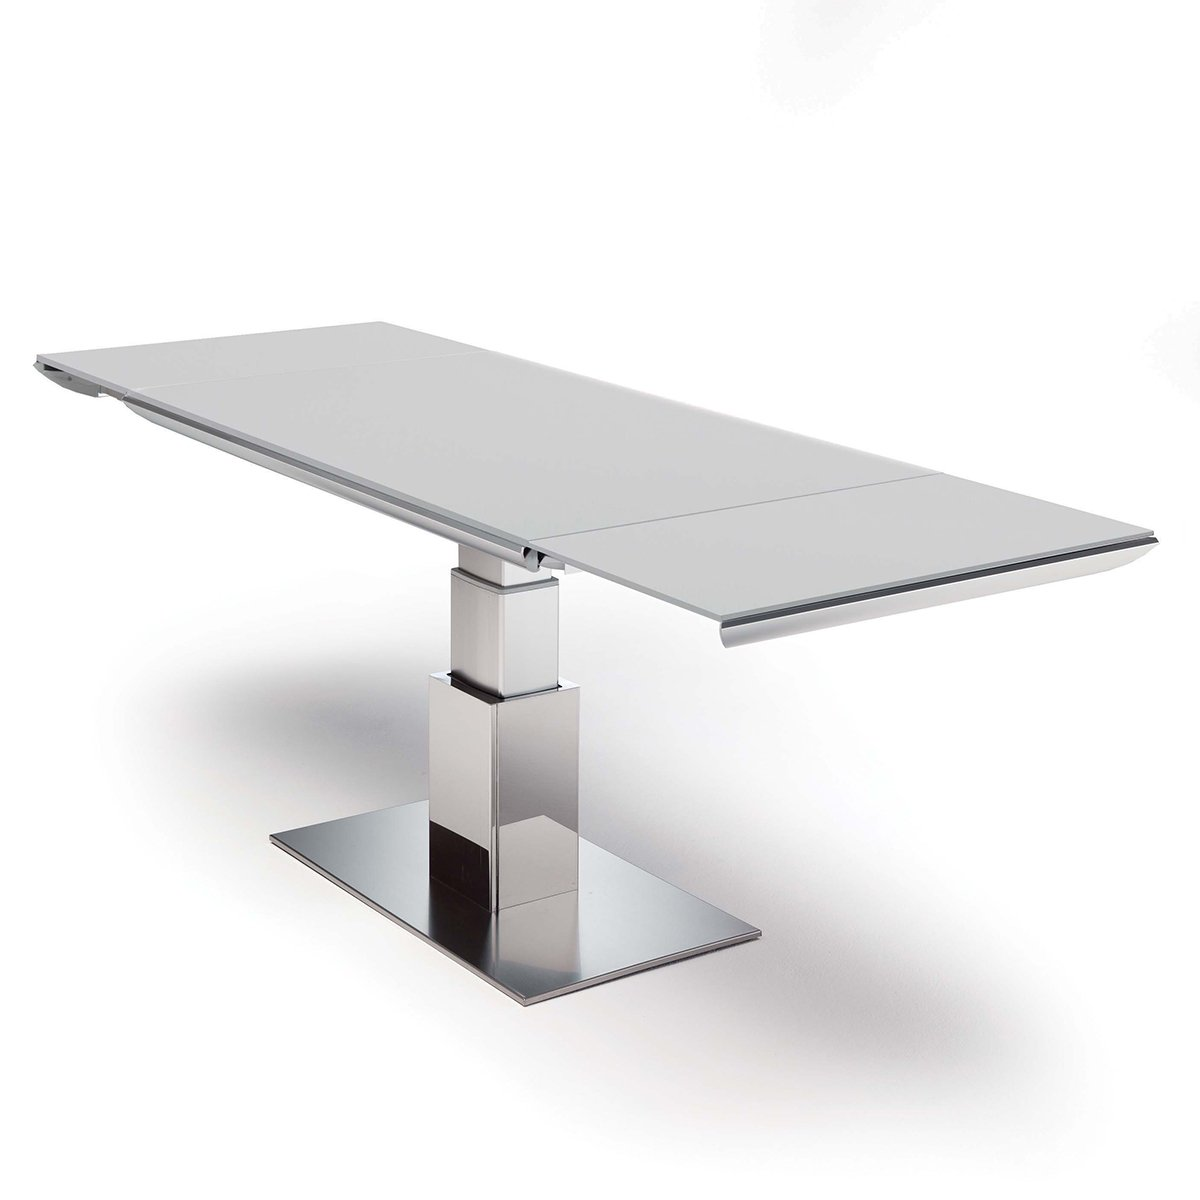 Table Basse Relevable Design Table Basse Relevable But Table Basse Relevable Sakura